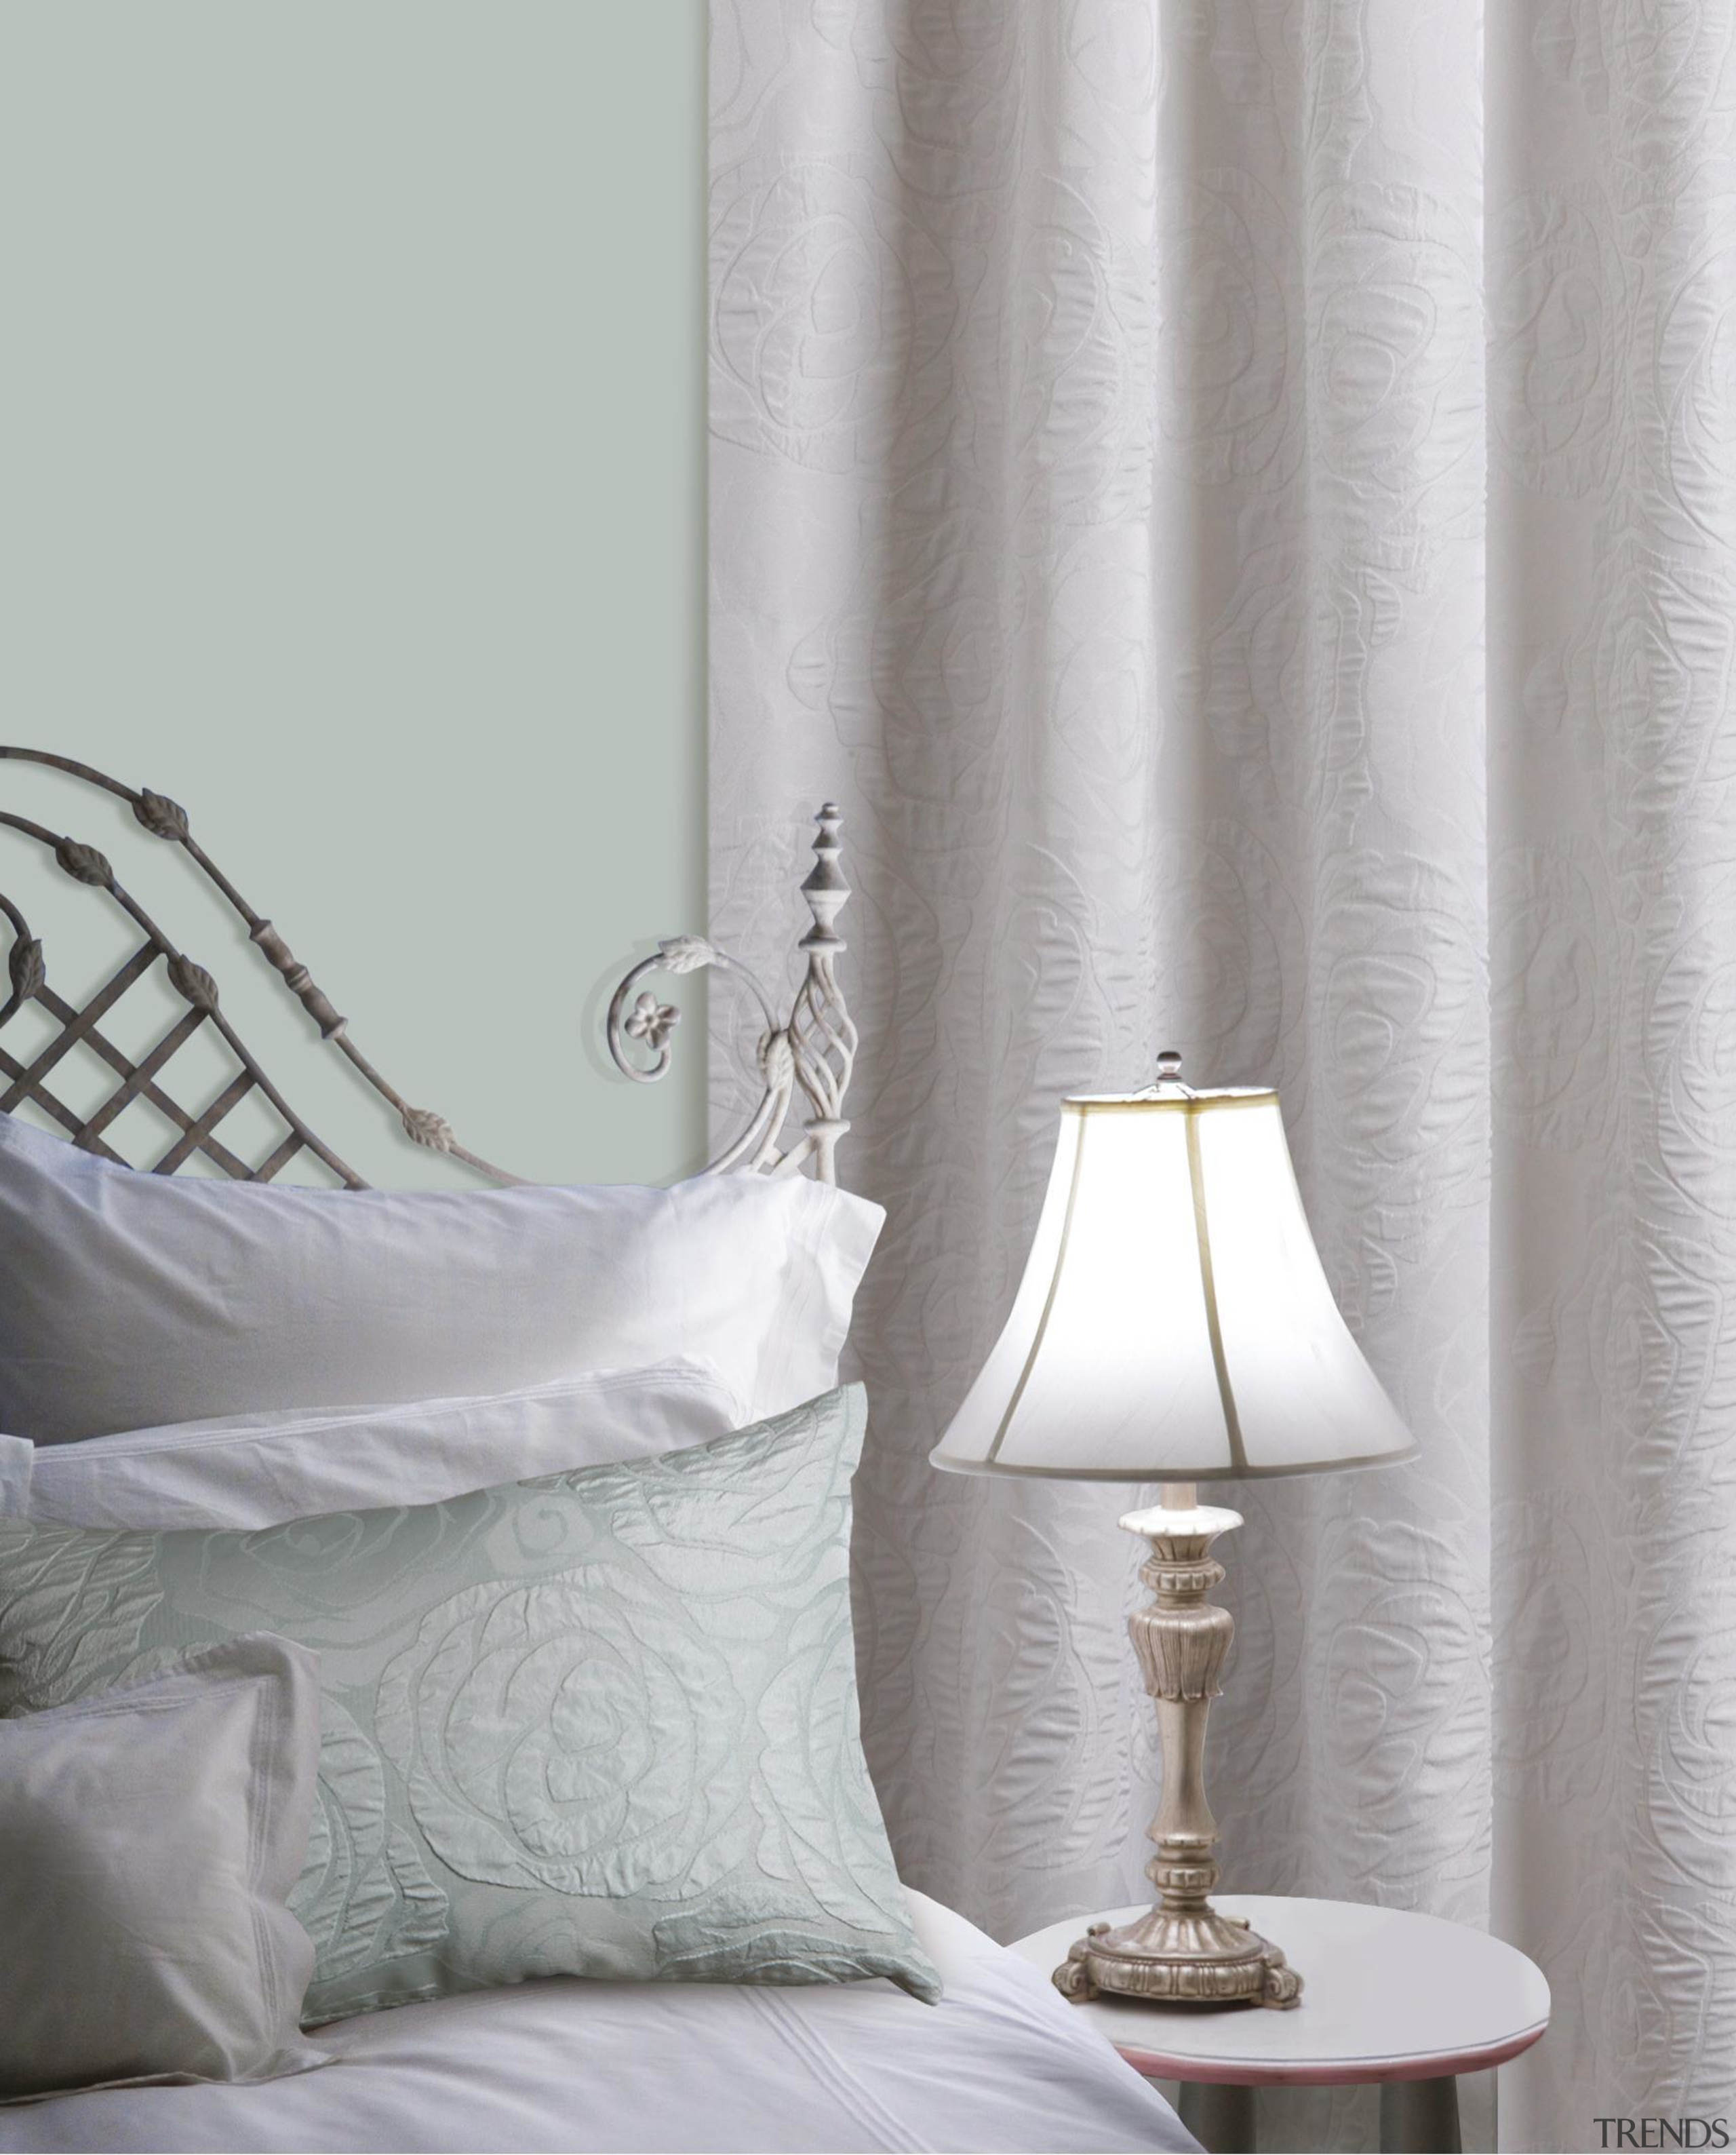 Waltz - bedroom | curtain | decor | bedroom, curtain, decor, interior design, textile, window covering, window treatment, gray